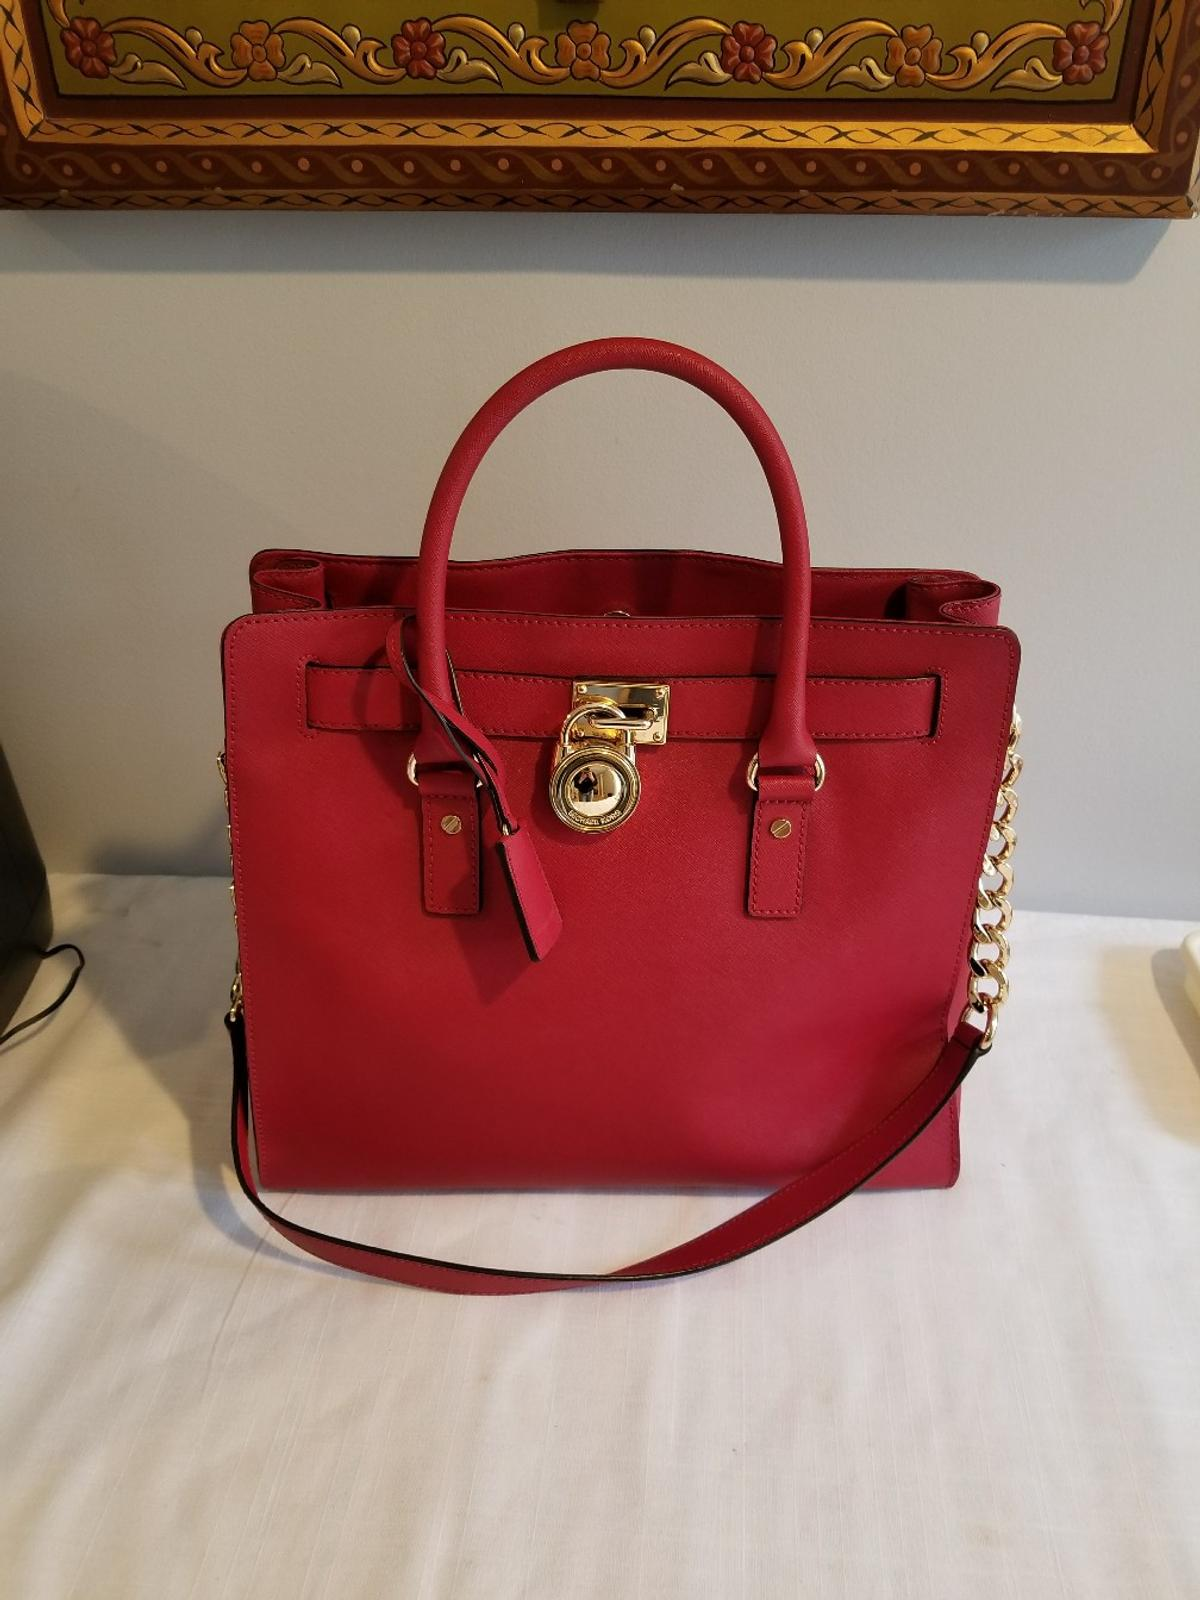 This sophisticated Michael Kors tote is crafted in solid saffiano leather with gold-tone hardware. A logo lock accents the front. The magnetic top line opens to a logo-lined, 5-pocket interior with spring-lock keychain. Rolled handles and shoulder strap.